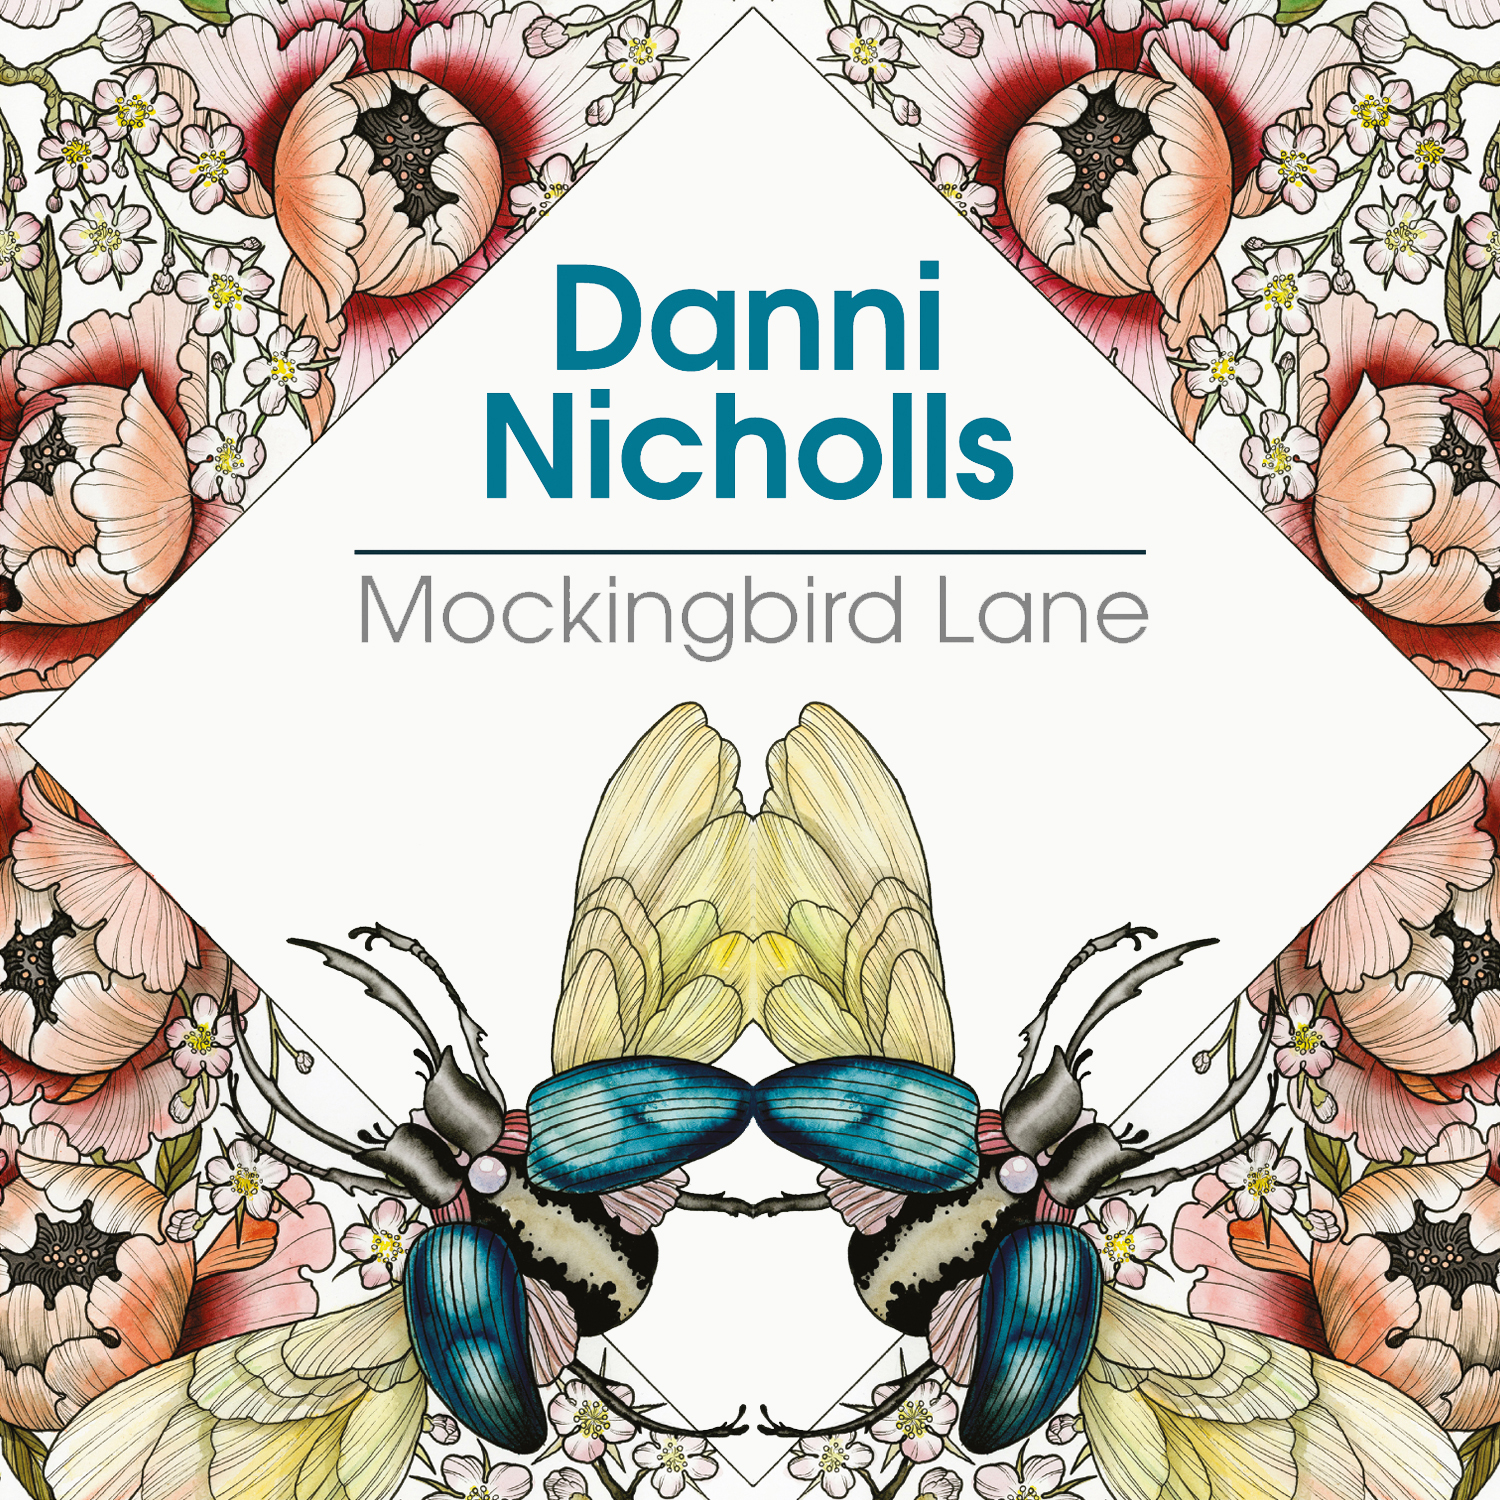 Danni Nicholls' 'Mockingbird Lane' featured album on BBC Scotland